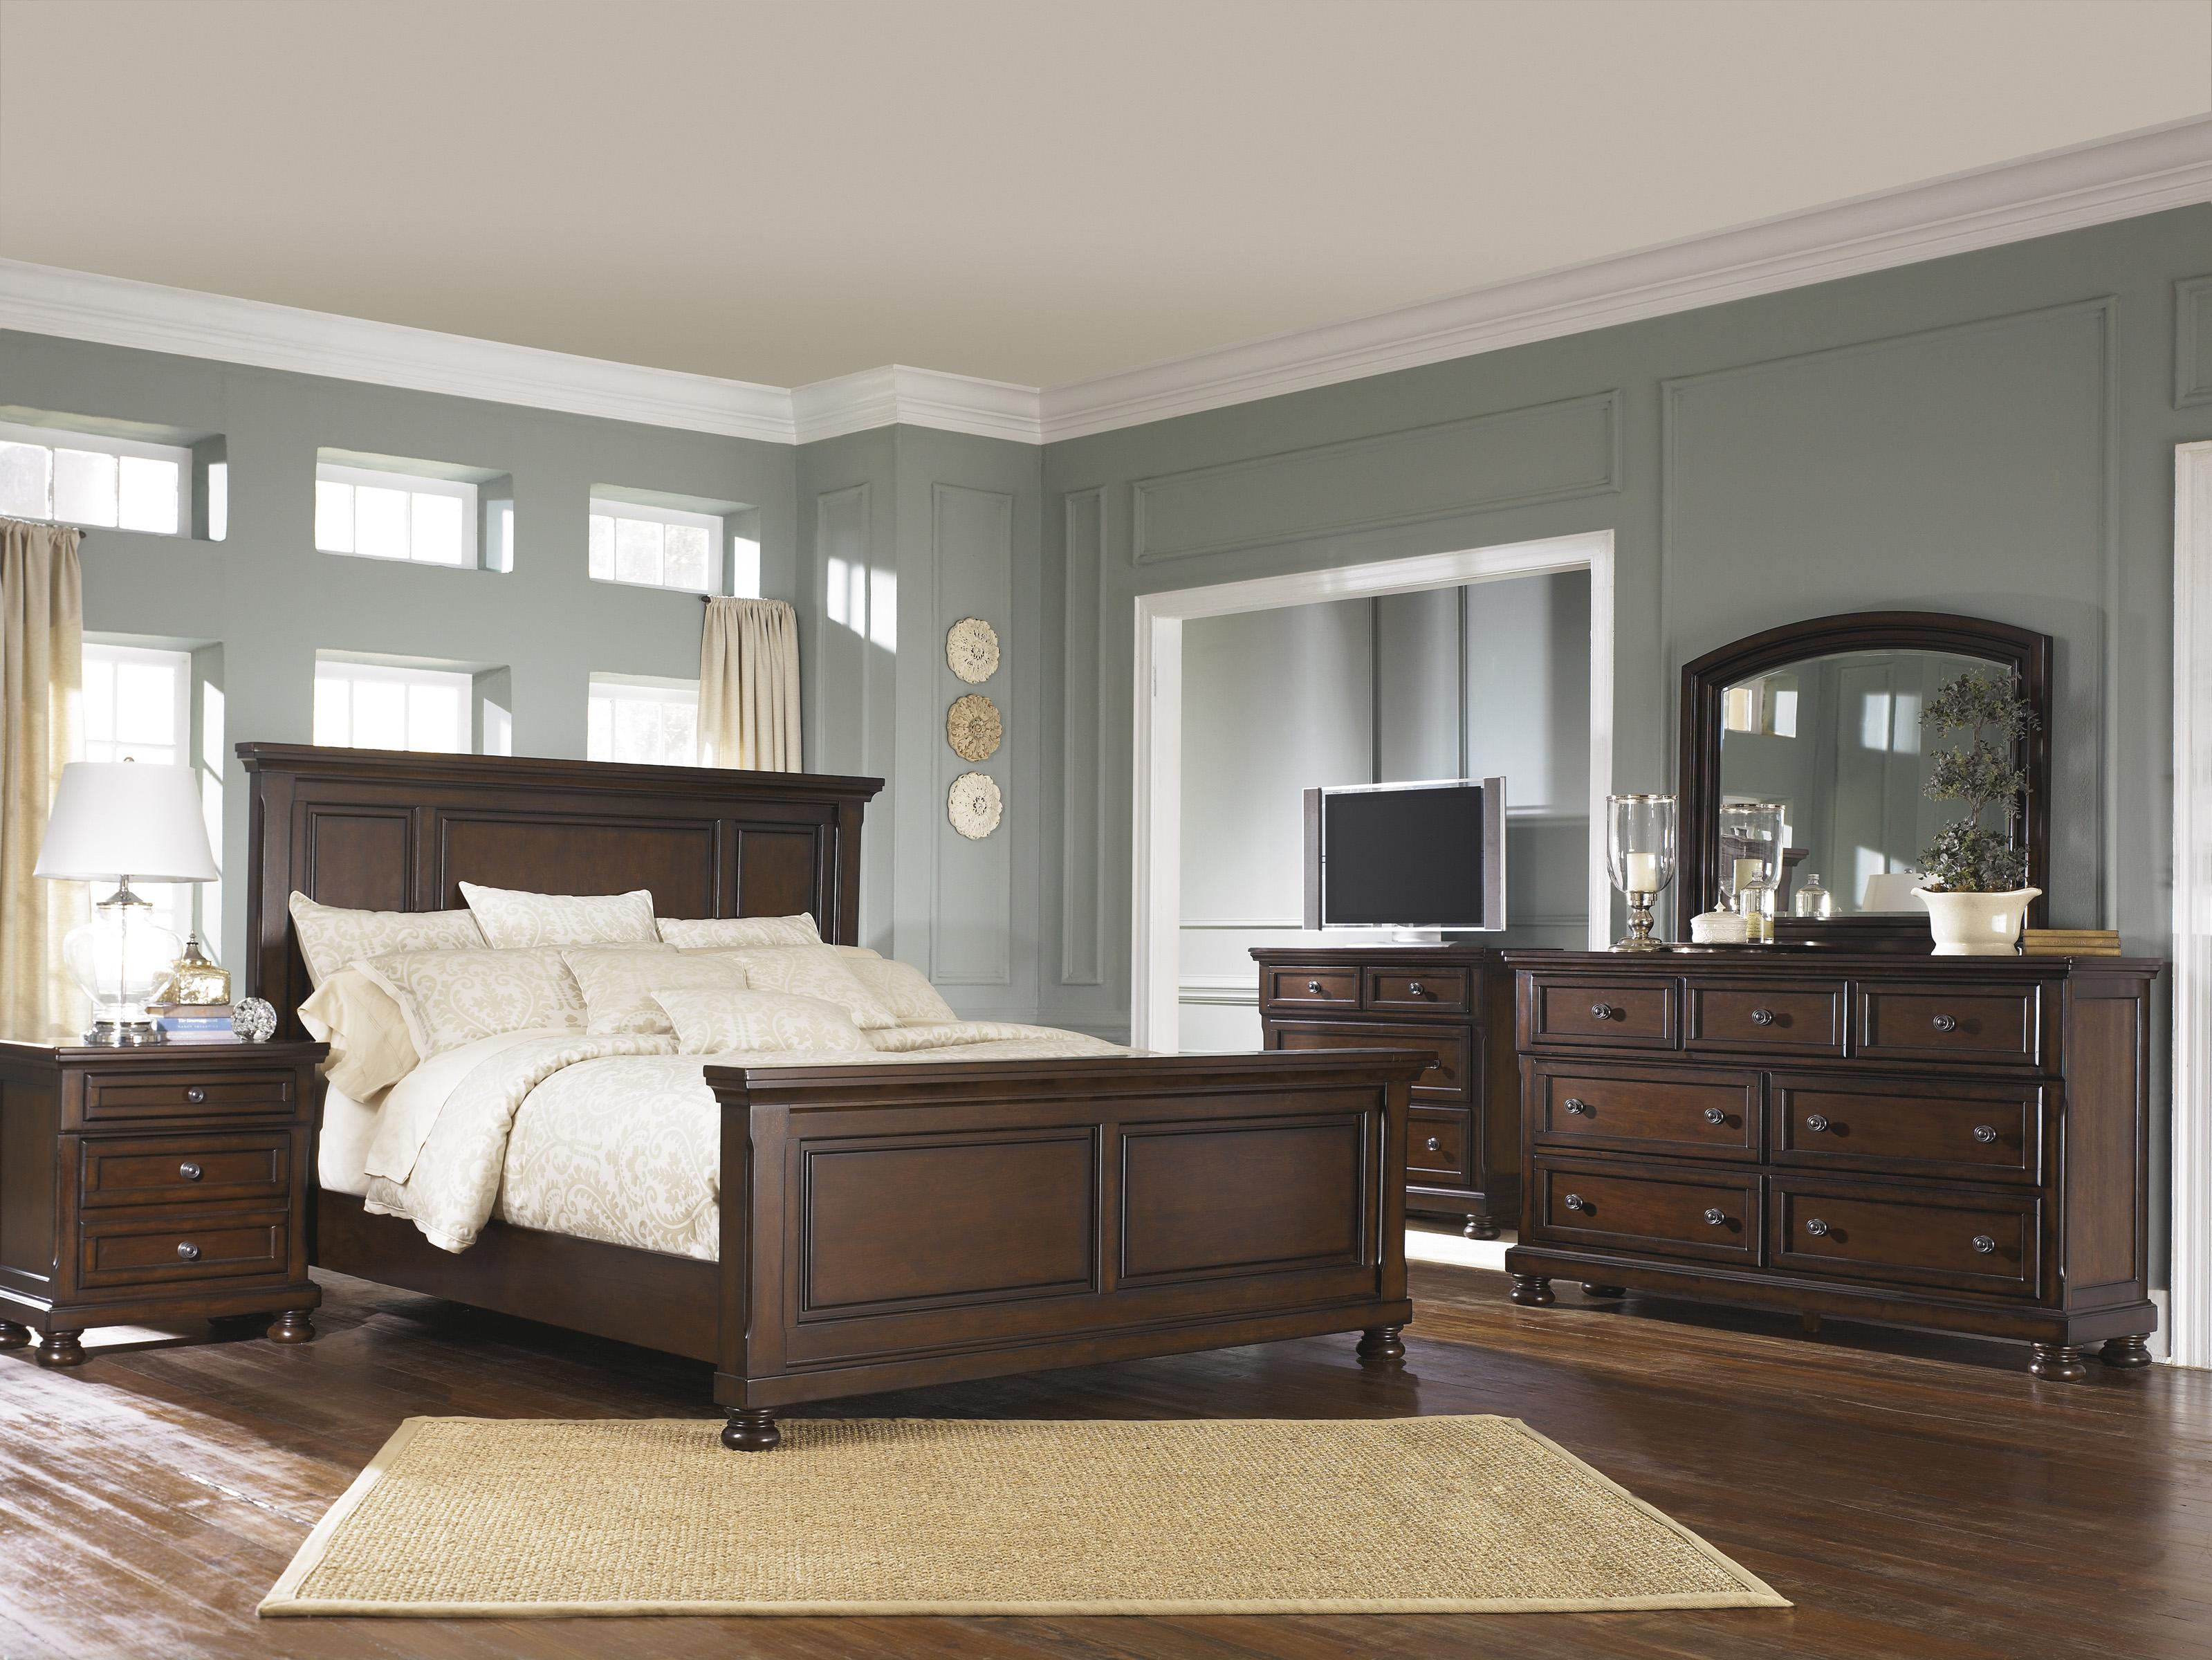 Ashley Furniture Porter King Bedroom Group - Item Number: B697 K Bedroom Group 2